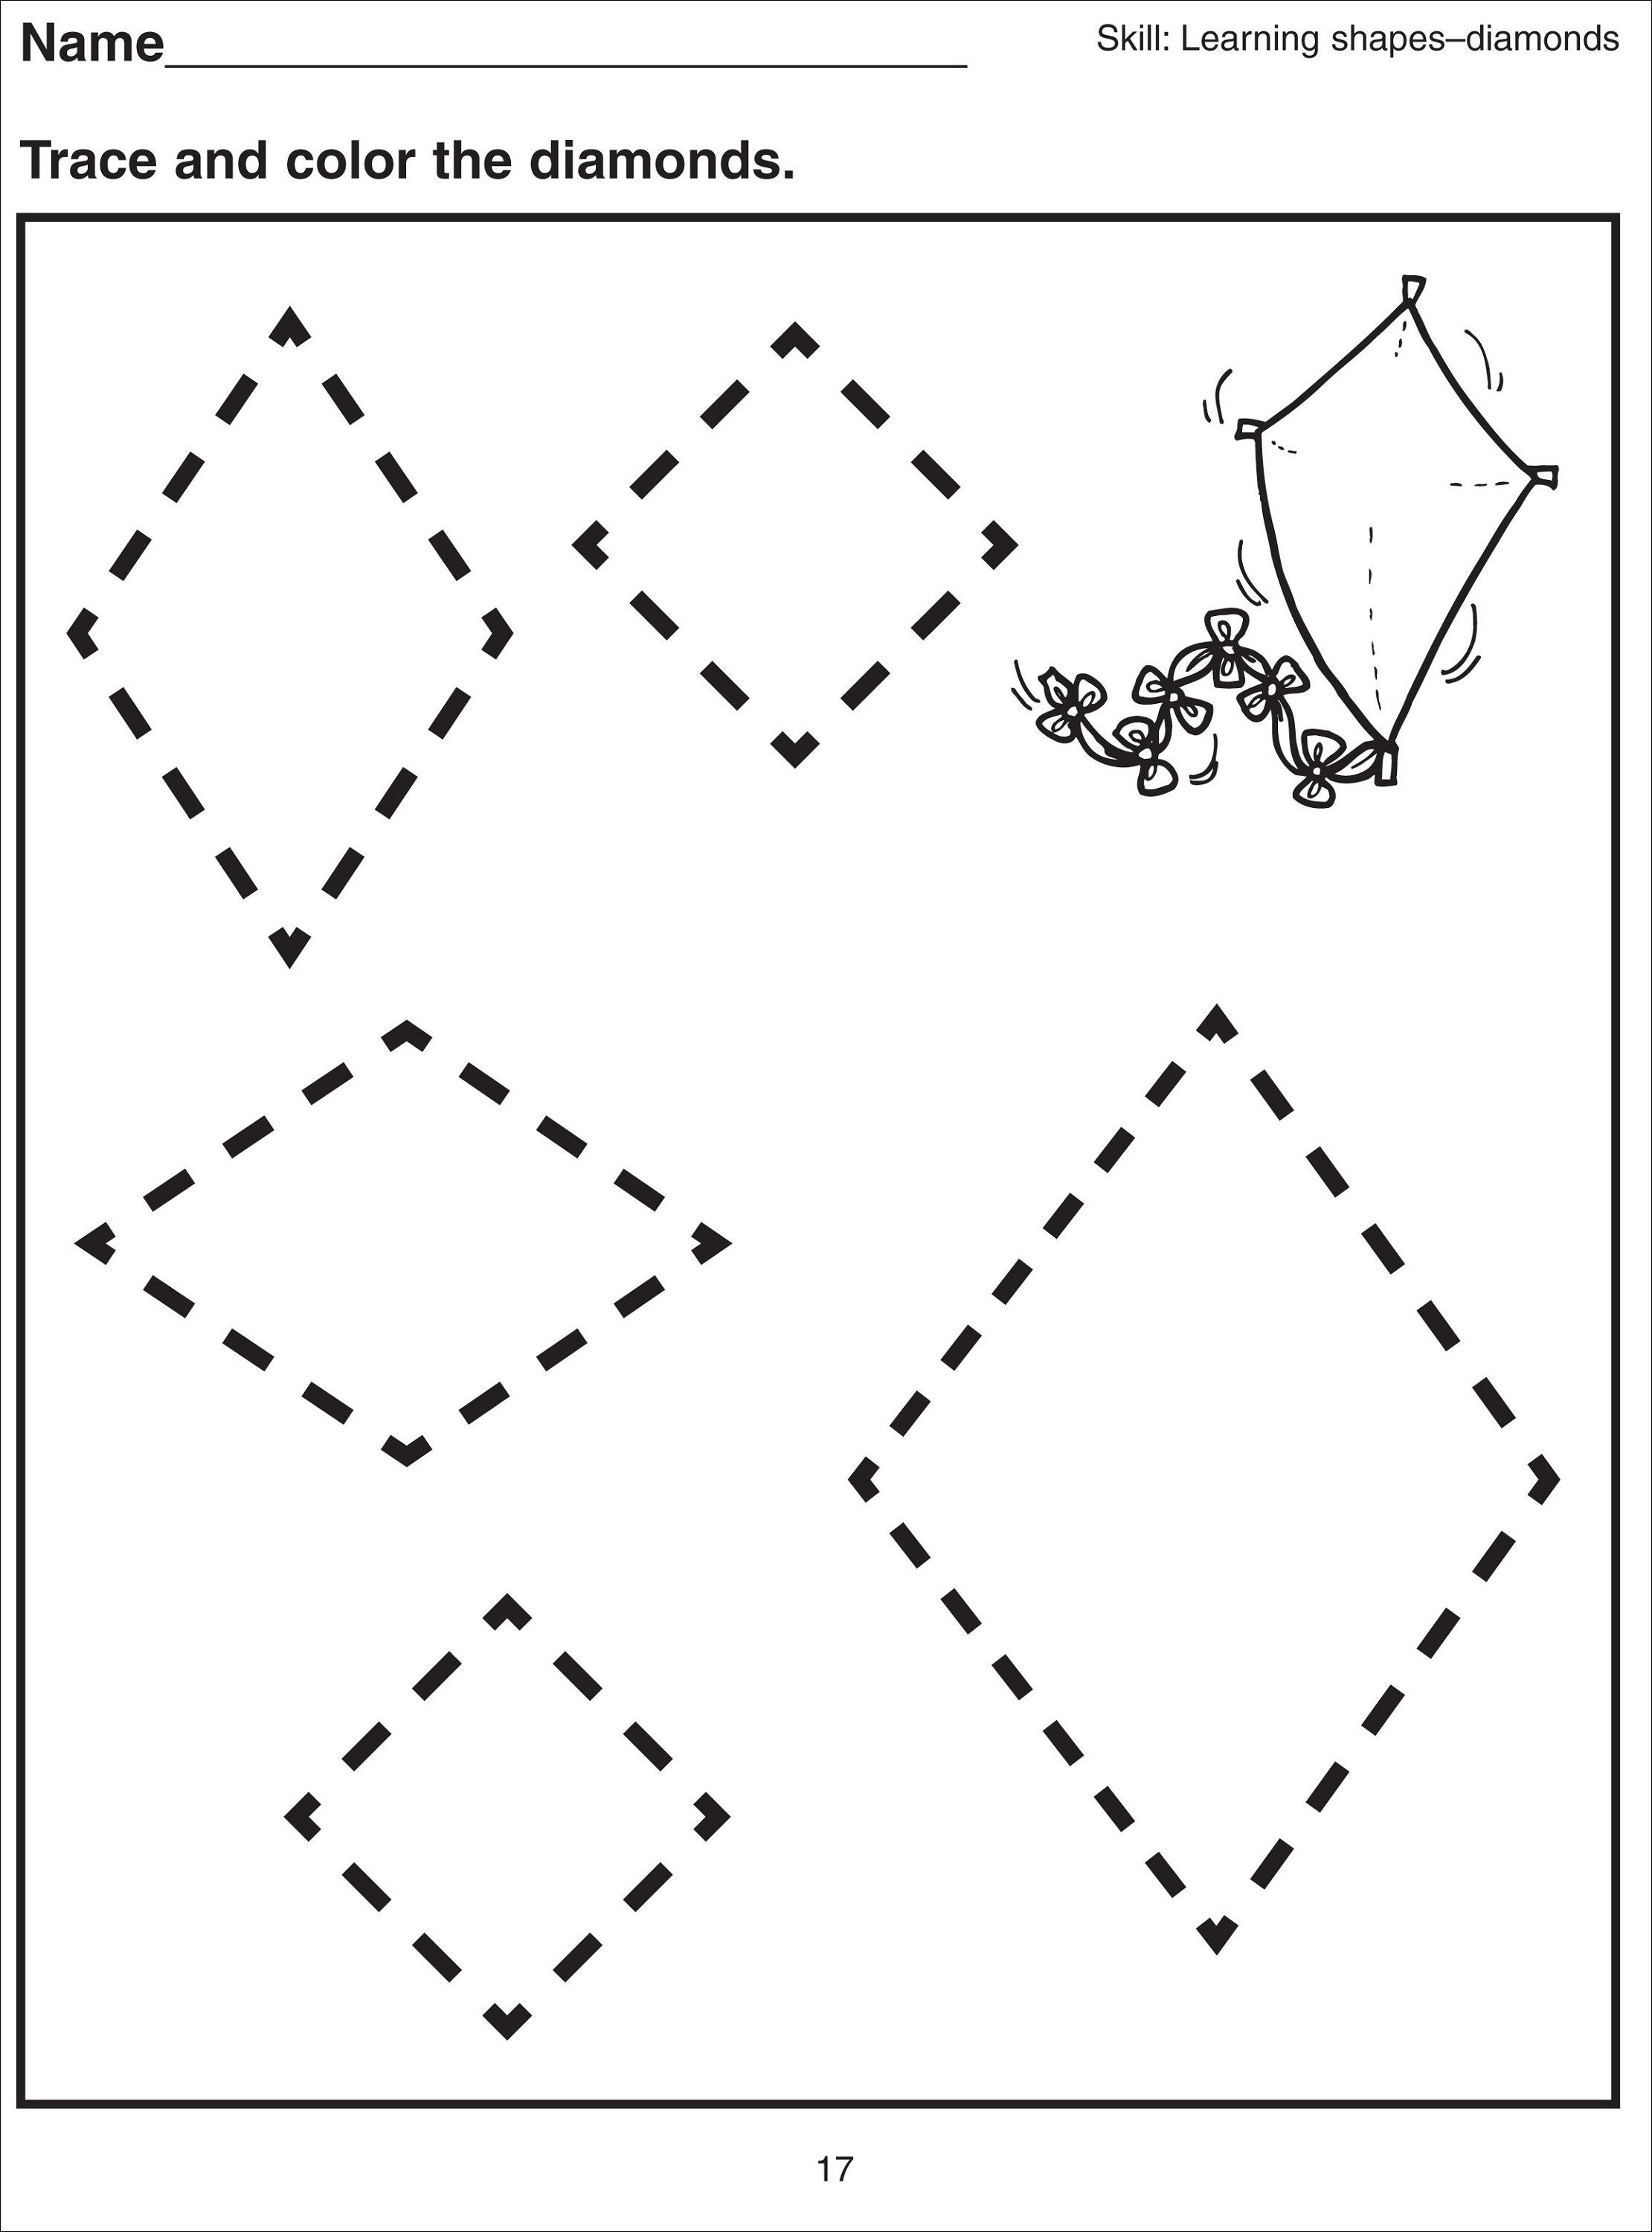 basic-shapes-worksheets-diamond